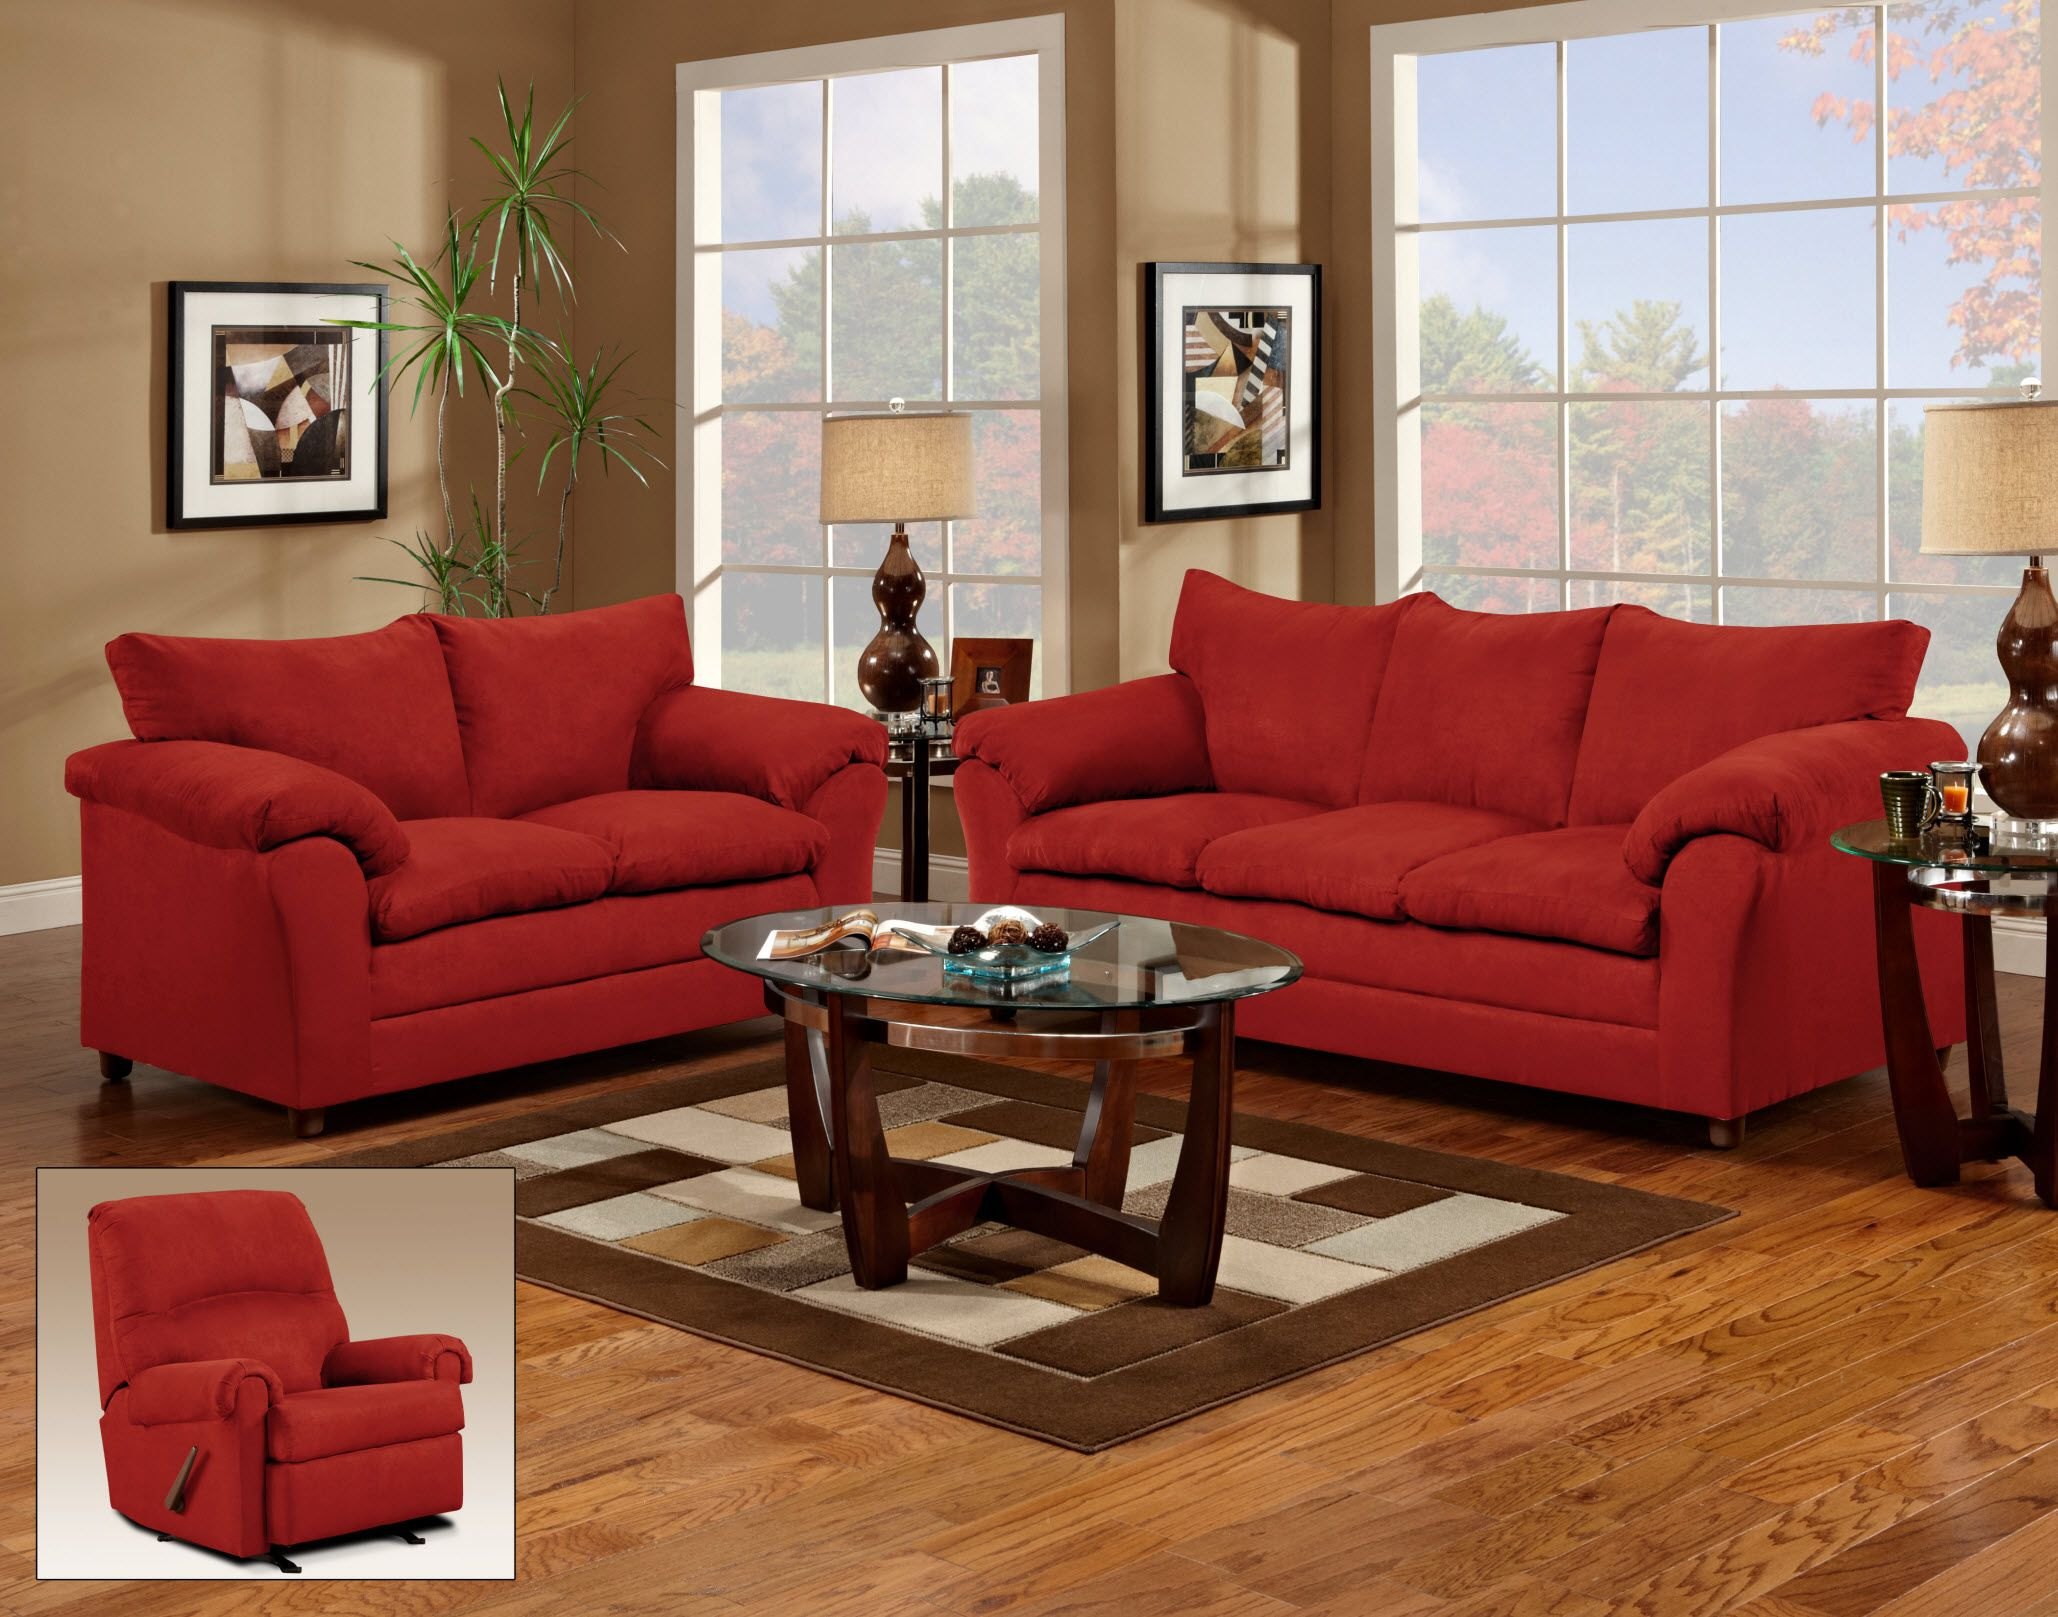 Red Sofa Design Living Room Red Couch And Loveseat Living Room For The Home Pinterest